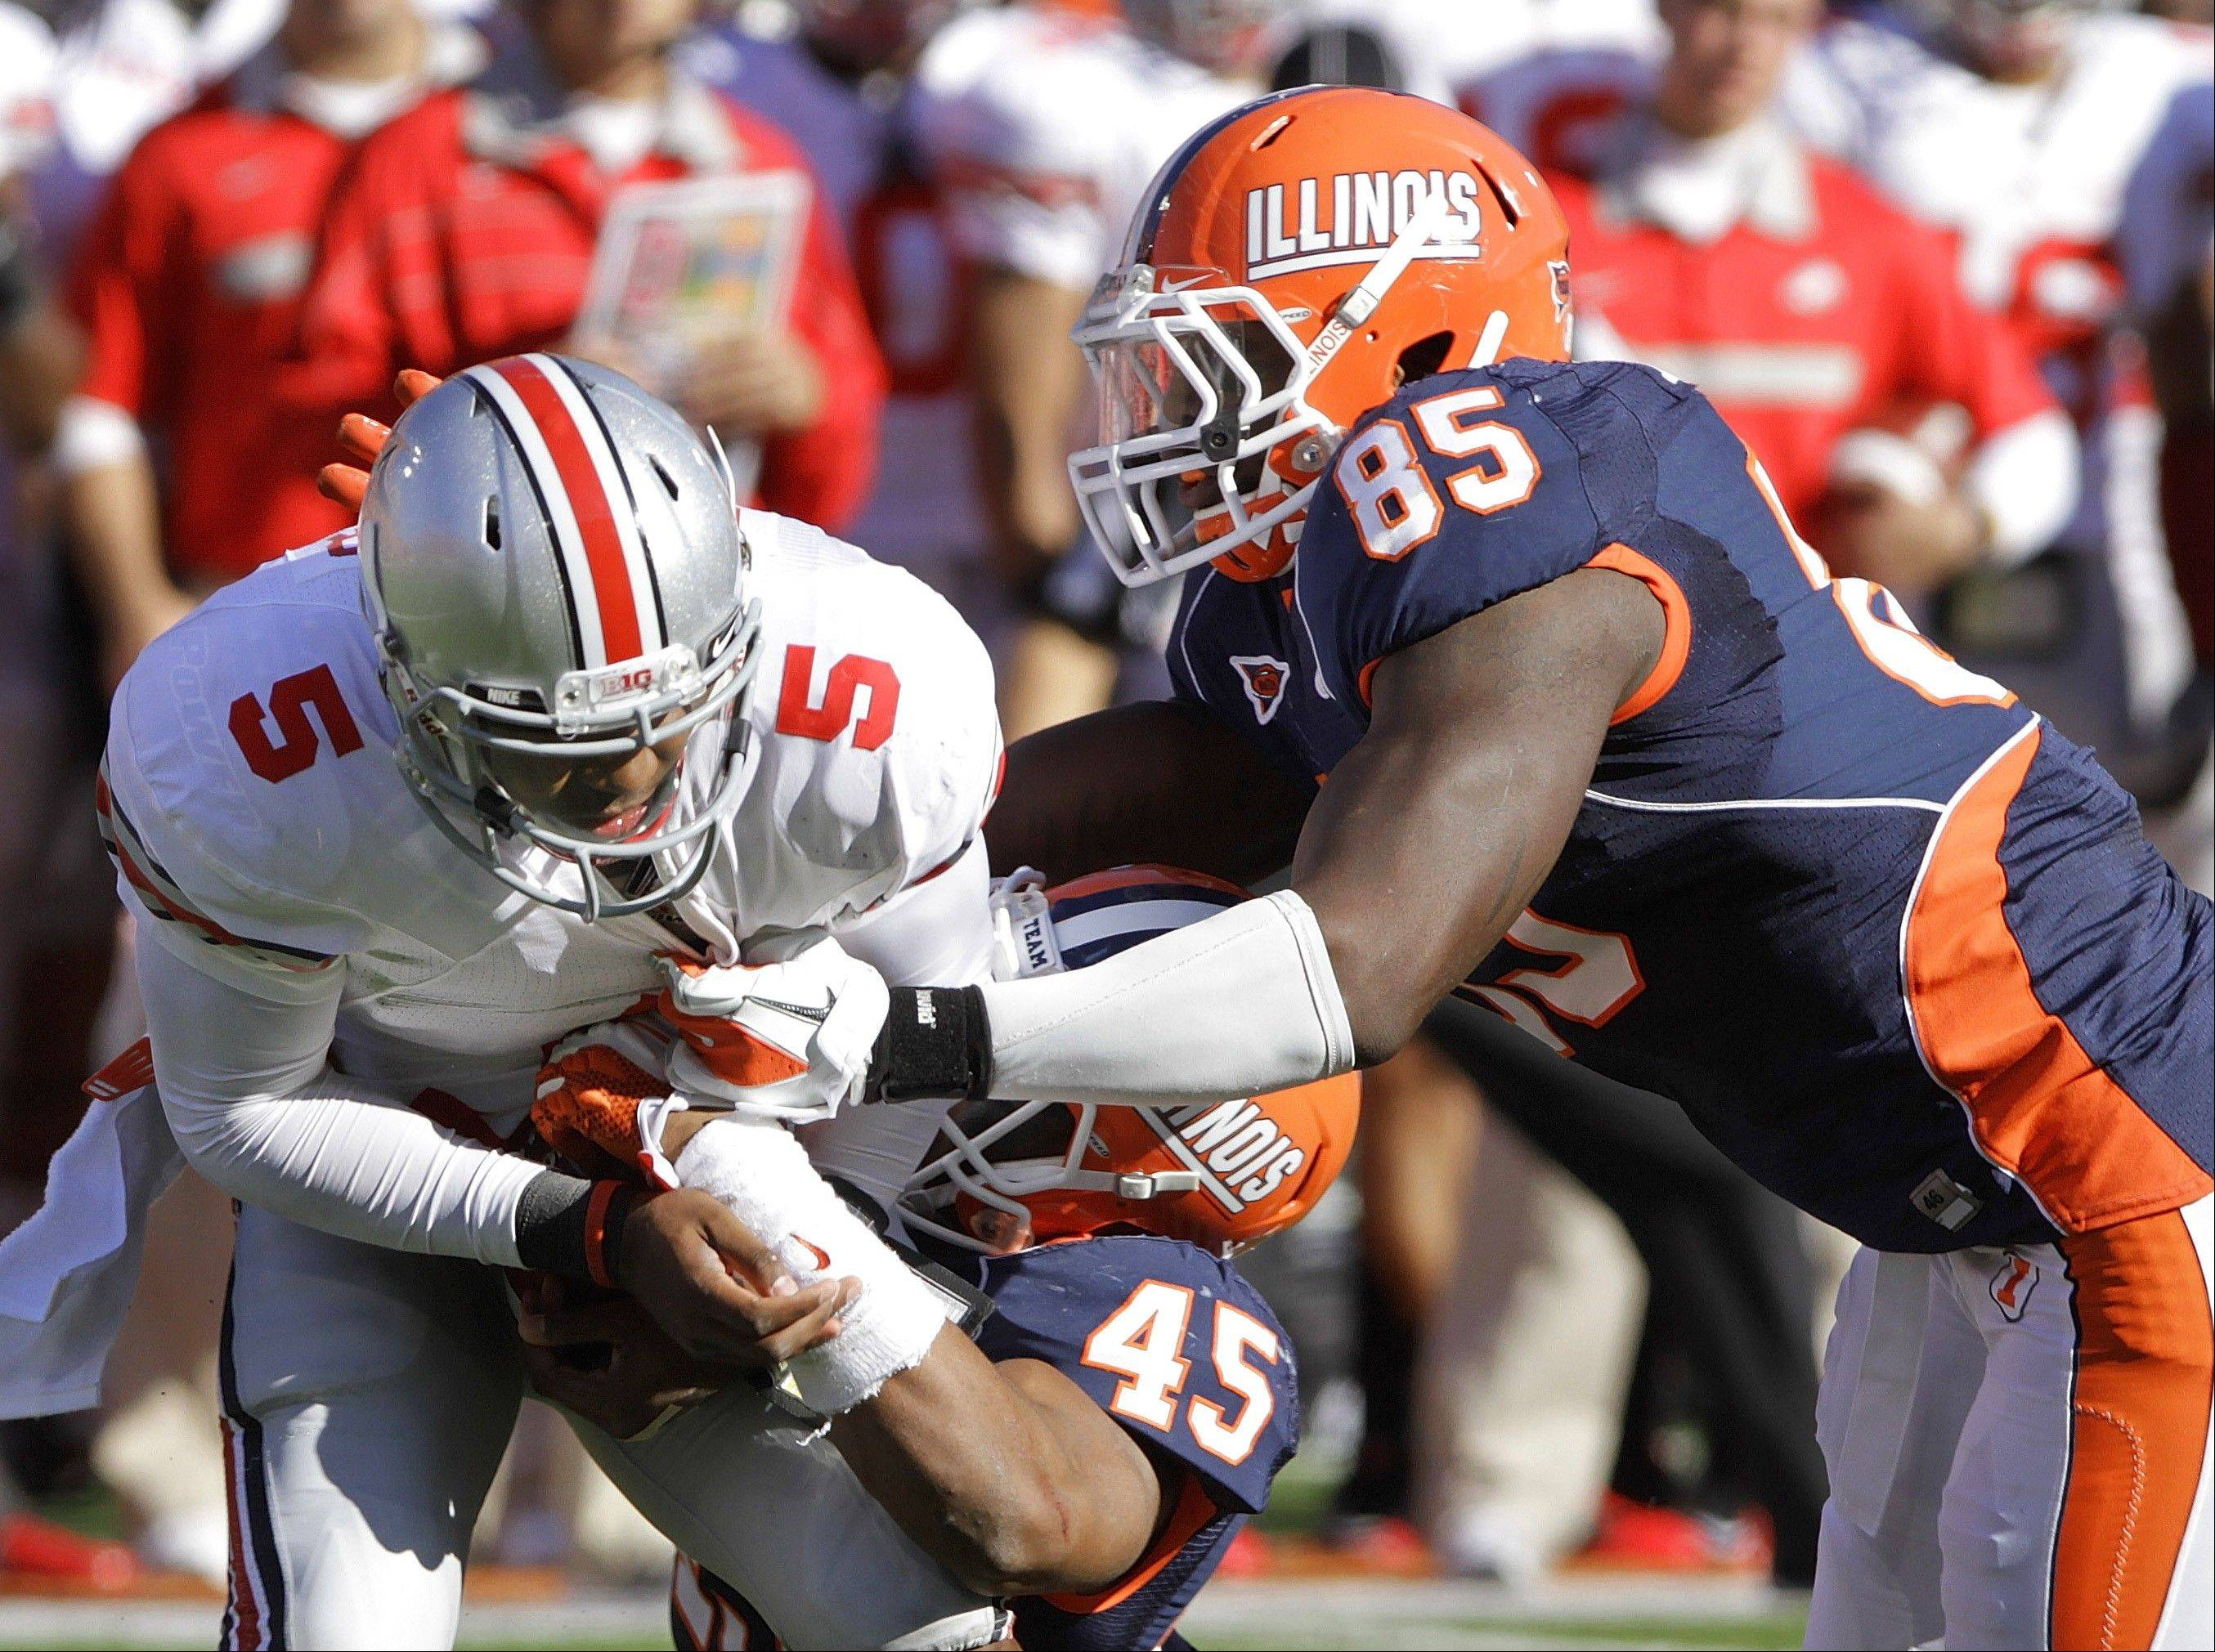 Illinois defensive end Whitney Mercilus (85) and linebacker Jonathan Brown (45) combine to sack Ohio State quarterback Braxton Miller during the 2011 game. Ohio State attempted just four passes -- completing one -- in a 17-7 victory.